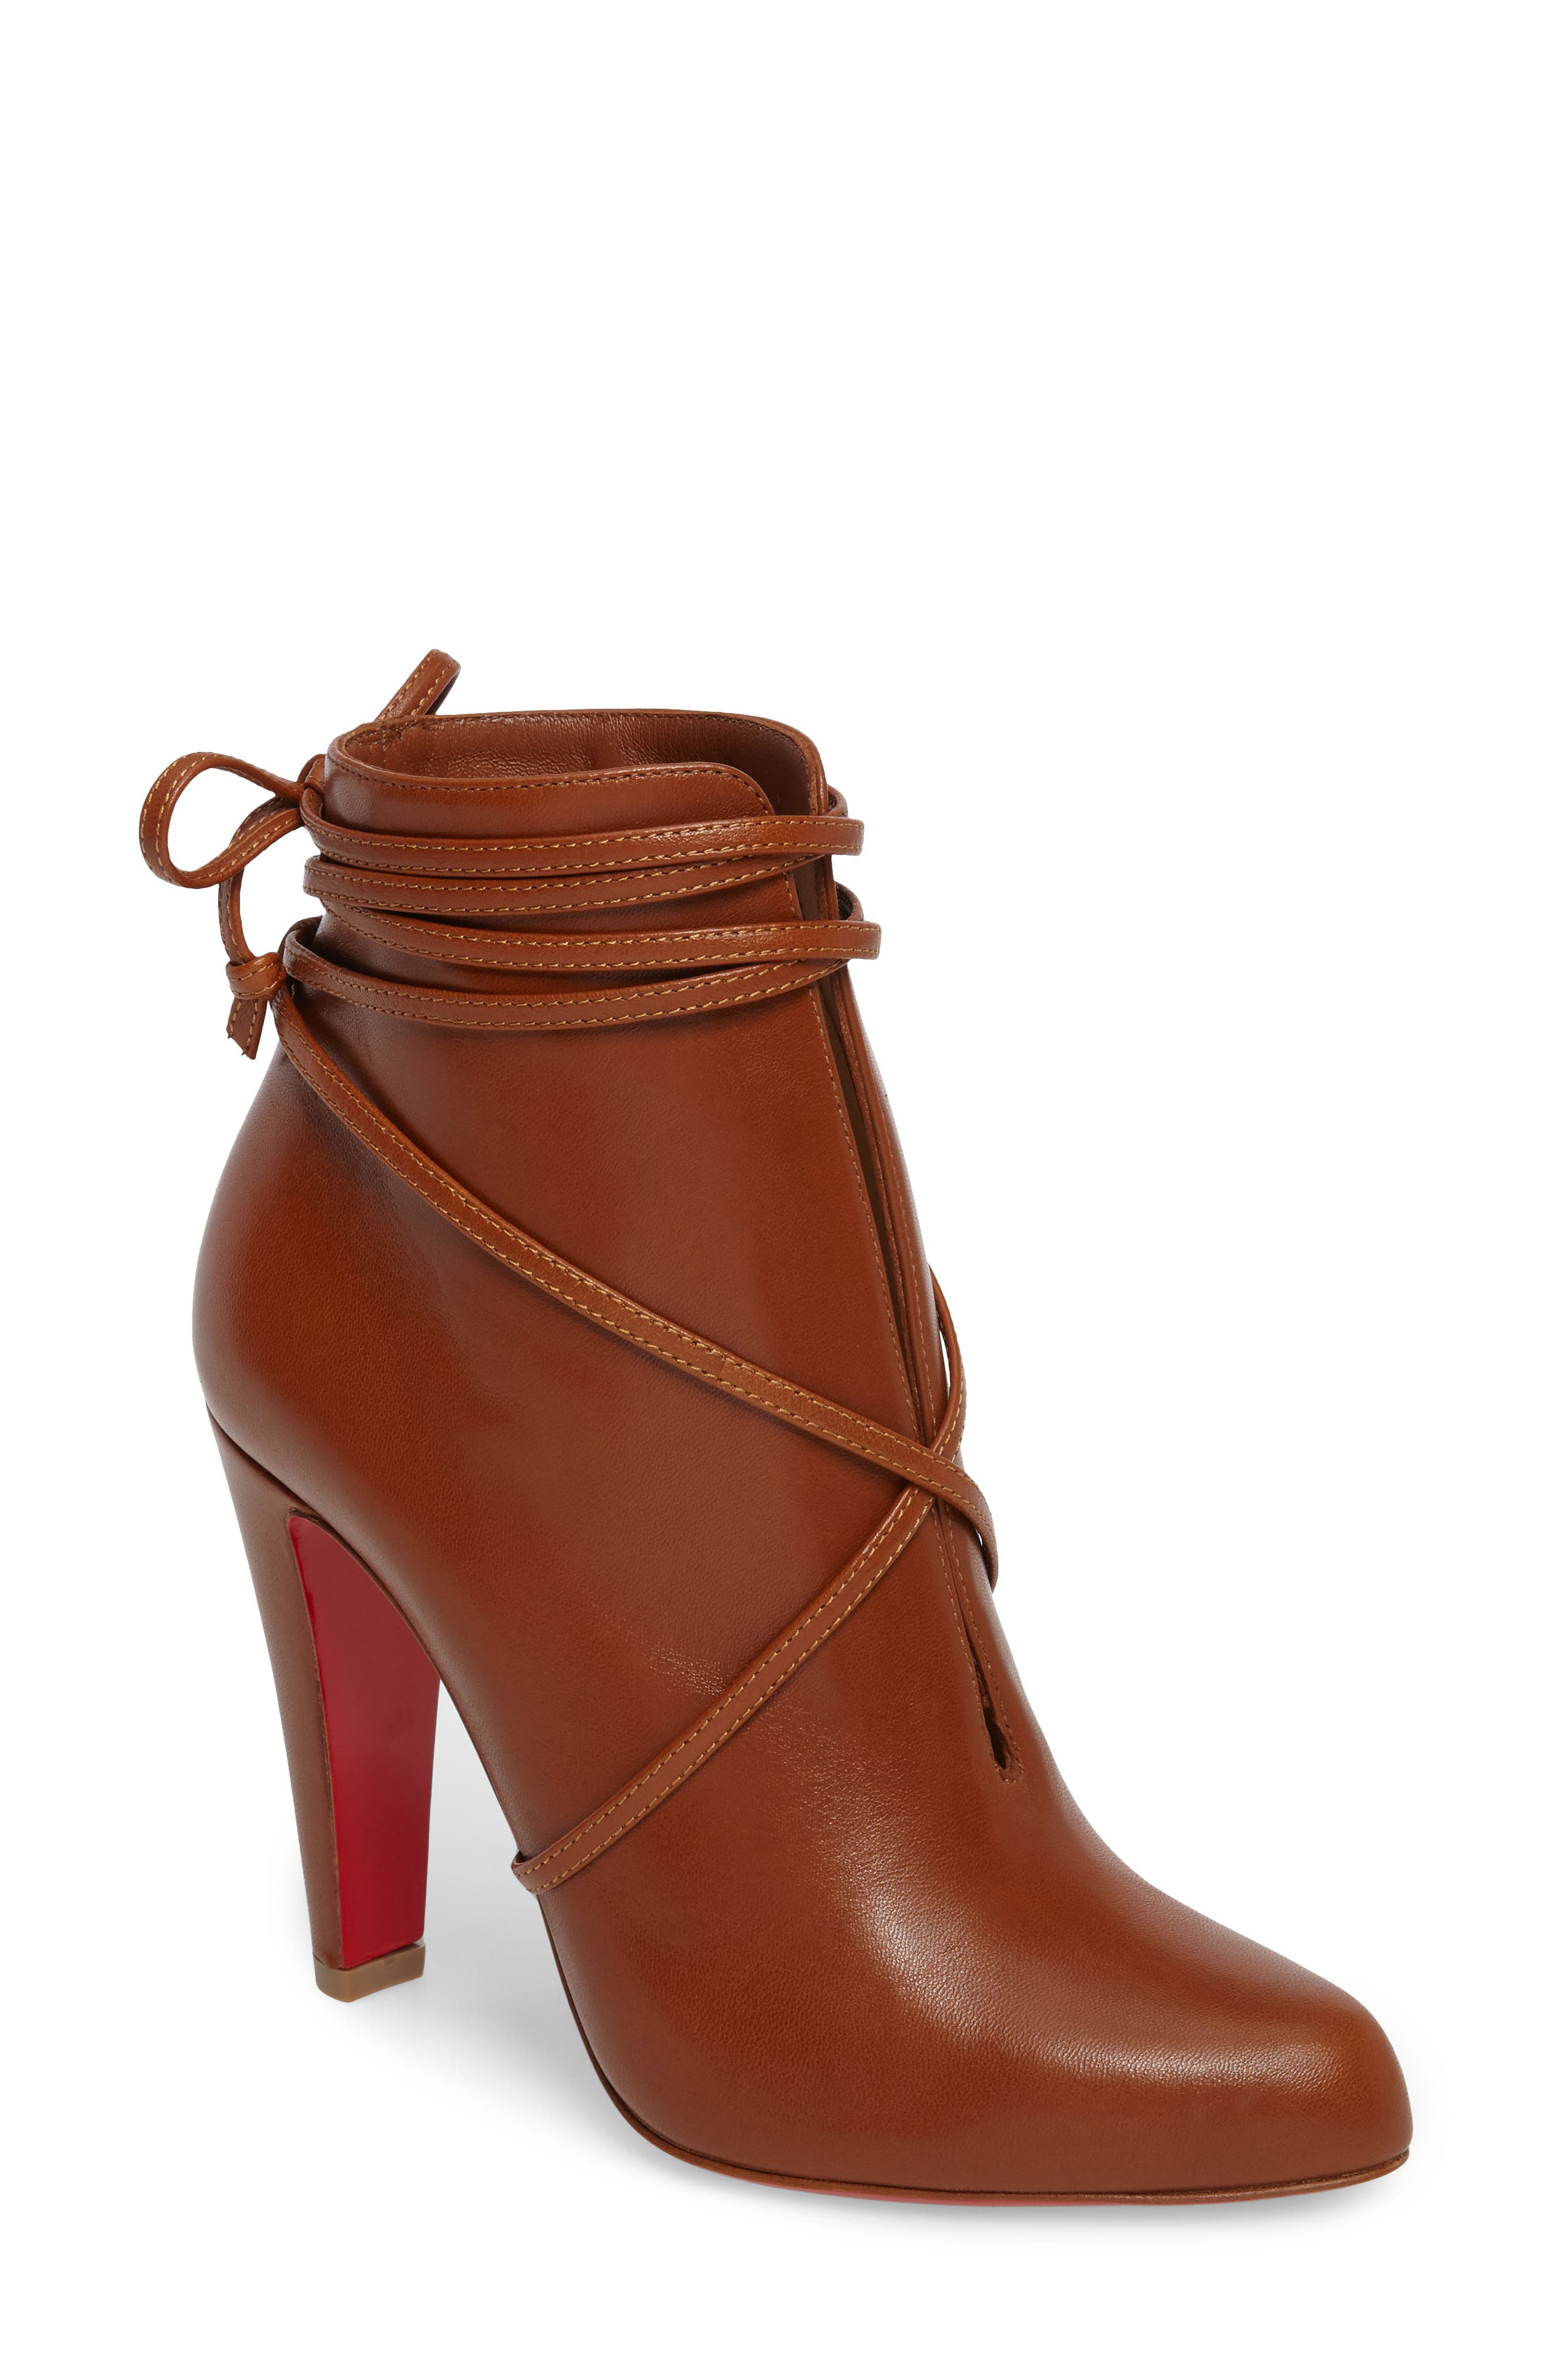 Alternate Image 1 Selected - Christian Louboutin Ankle Tie Bootie (Women)